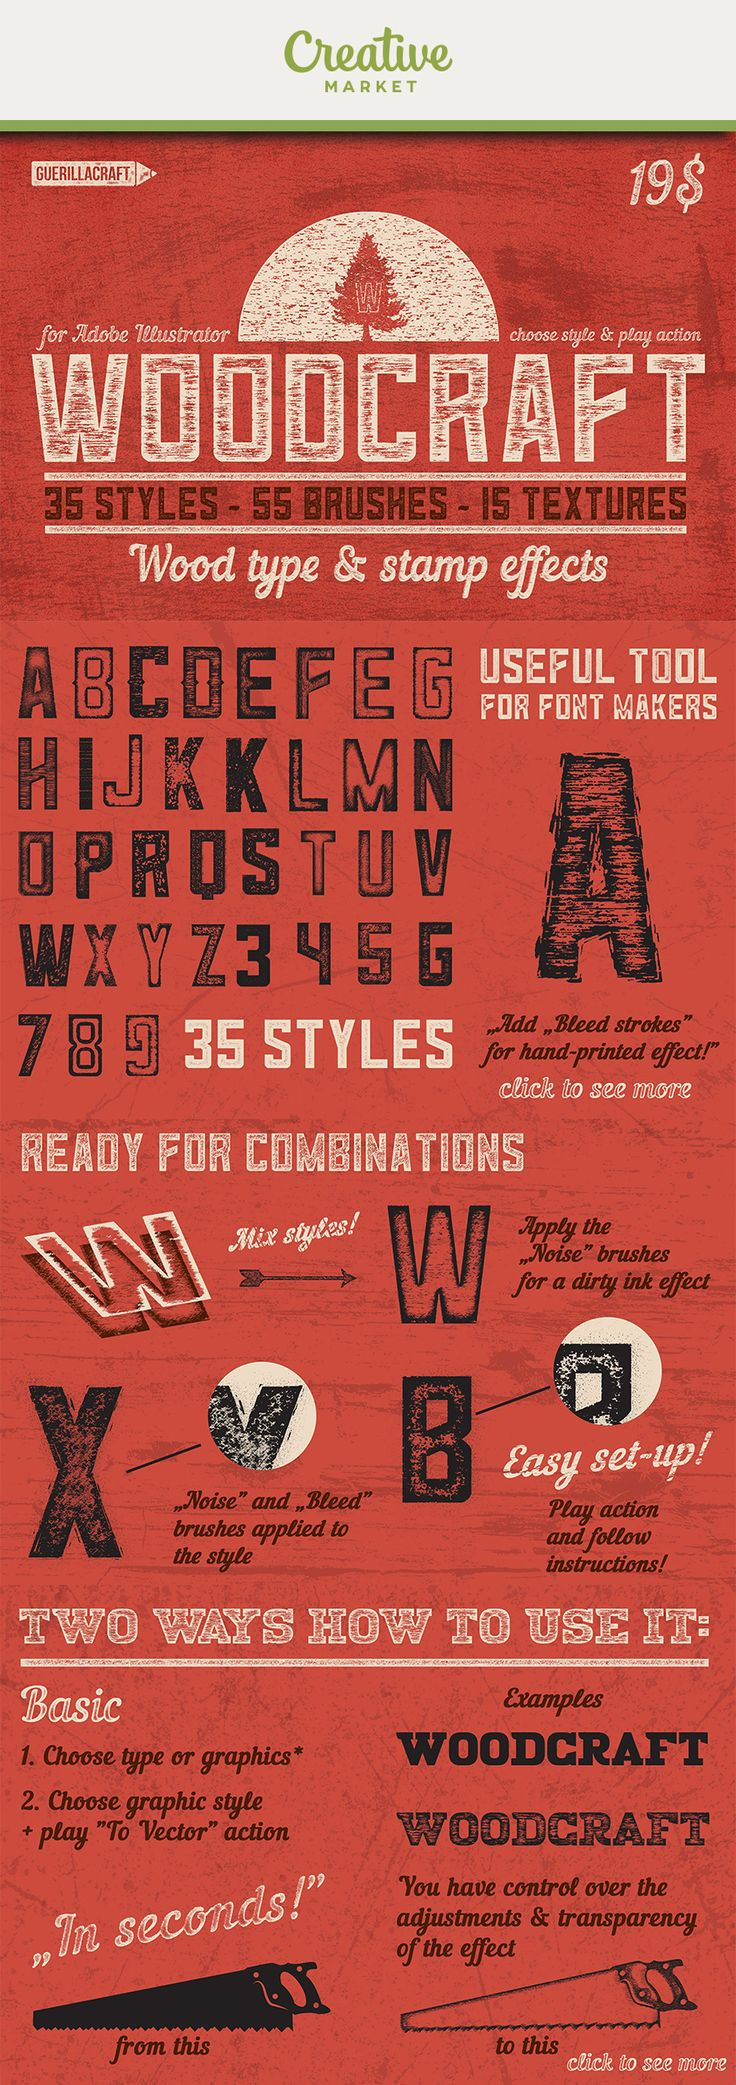 Ad: Woodcraft is a pack containing Styles, brushes and textures for making Wood Type and Stamps graphics in Adobe Illustrator! It is handy tool for the lettering artists and font makers! Just apply style to your typography and play action! Get vintage looking type in seconds. Now on Creative Market!